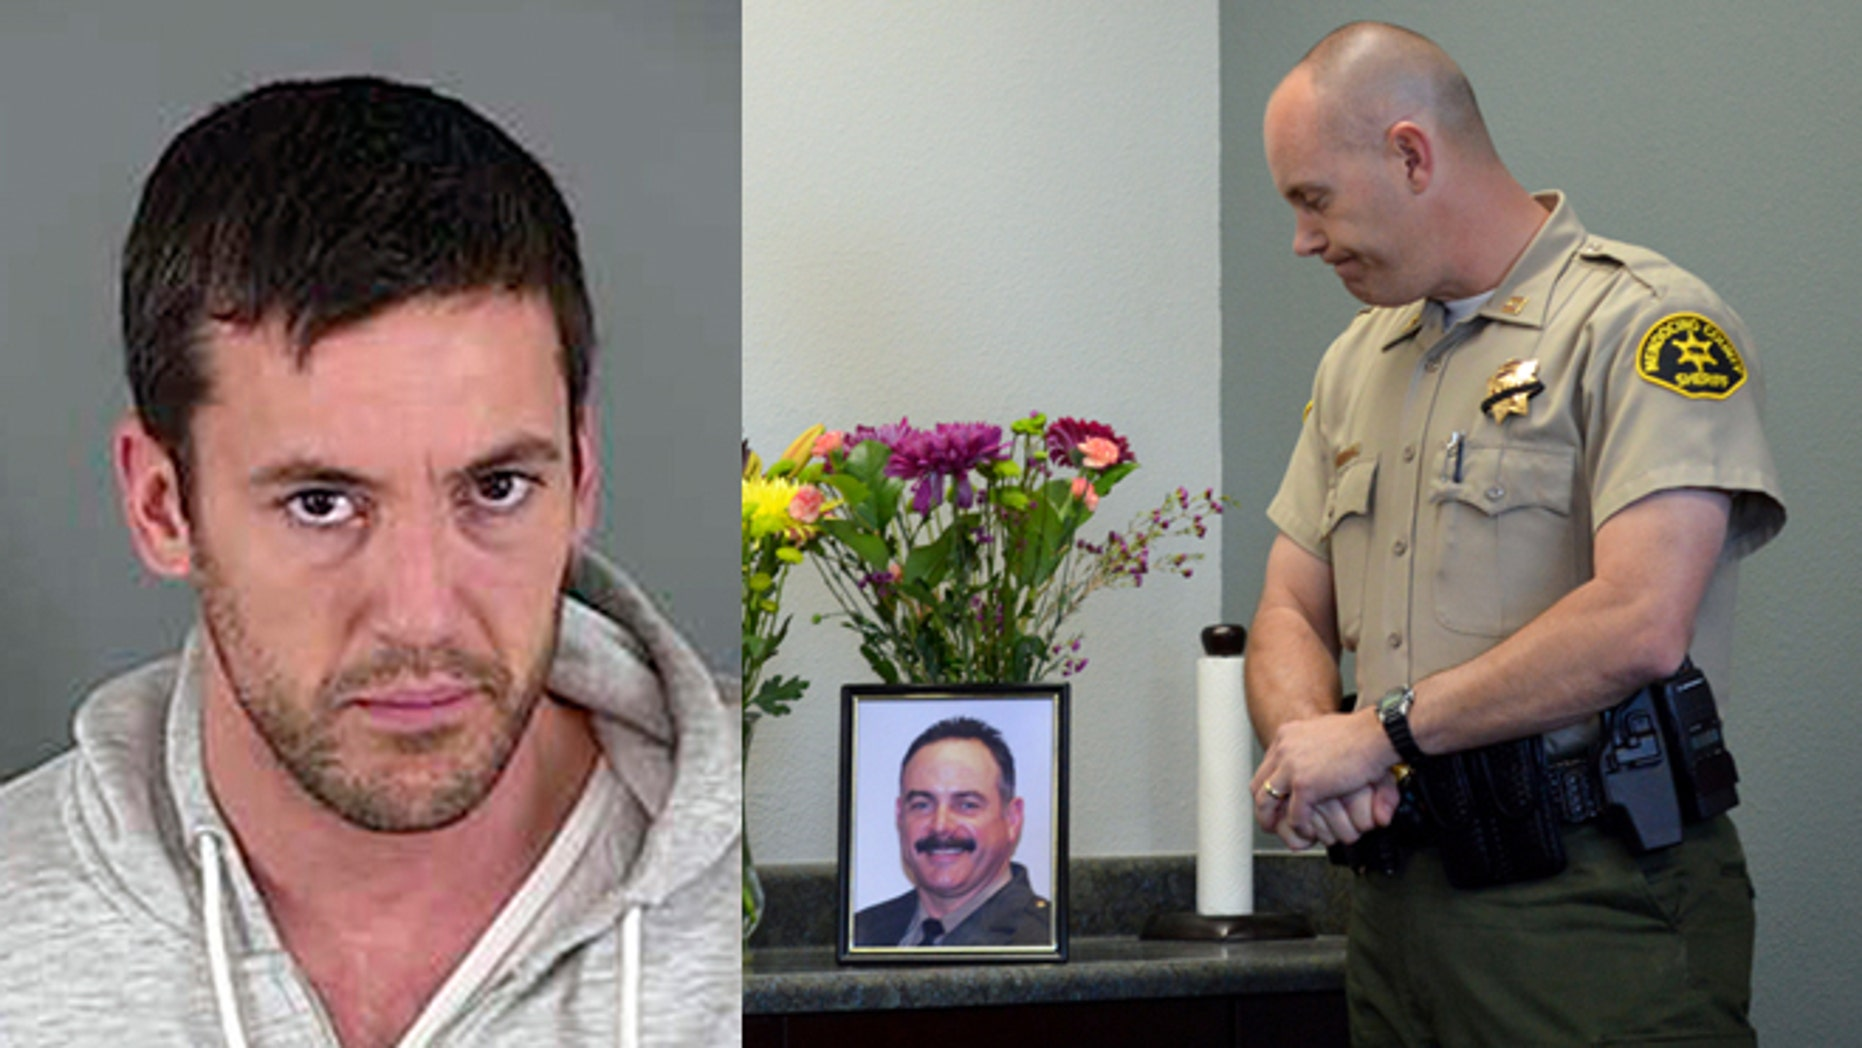 Left: Ricardo Antonio Chaney (AP Photo/Lane County Sheriff's Department). Right: Mendocino Sheriff's Captain Greg Van Patten looks at a photograph of slain Deputy Ricky Del Fiorentino during a March 19, 2014 news conference outside Fort Bragg, Calif. (AP Photo/The Press Democrat, Alvin Jornada)